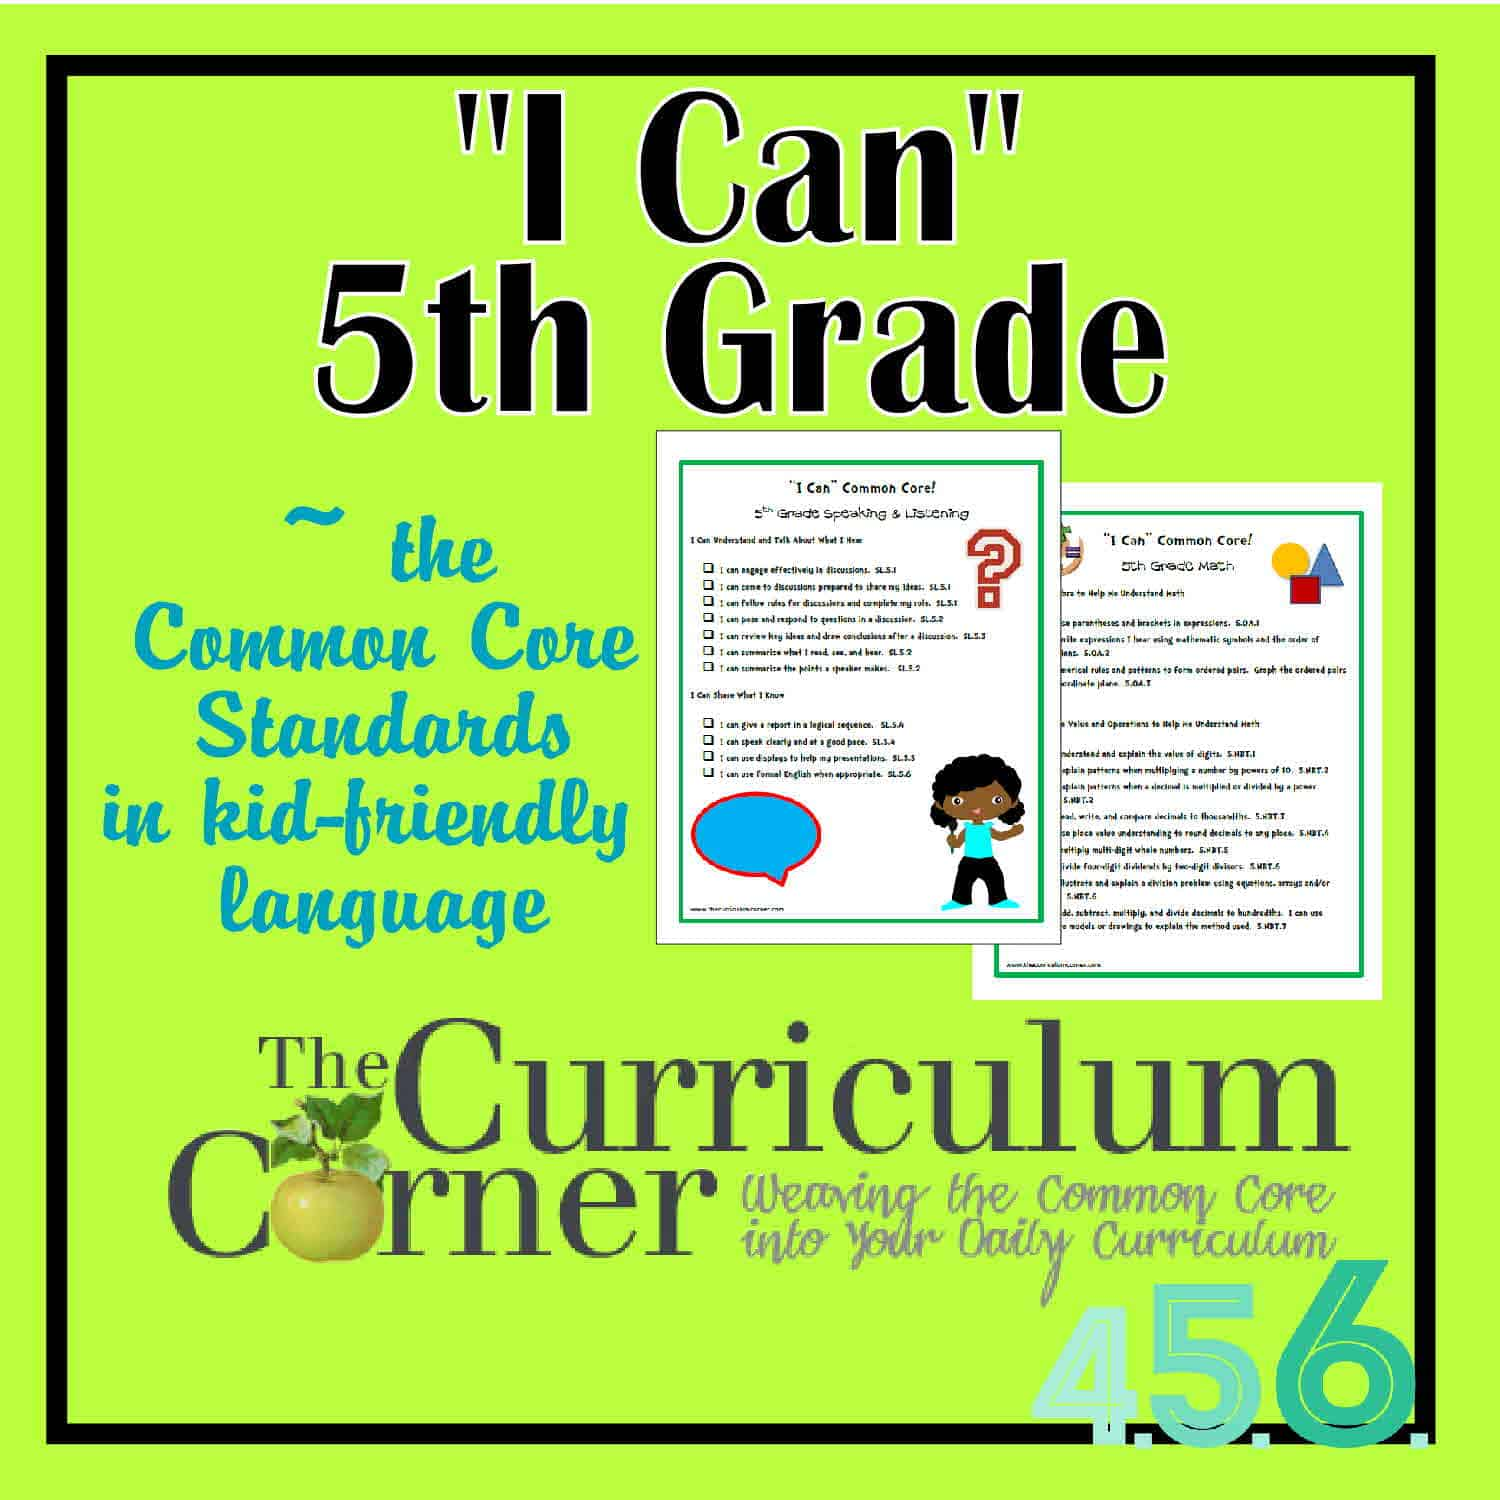 Worksheet 5 Grade i can common core 5th grade the curriculum corner 4 5 6 grade